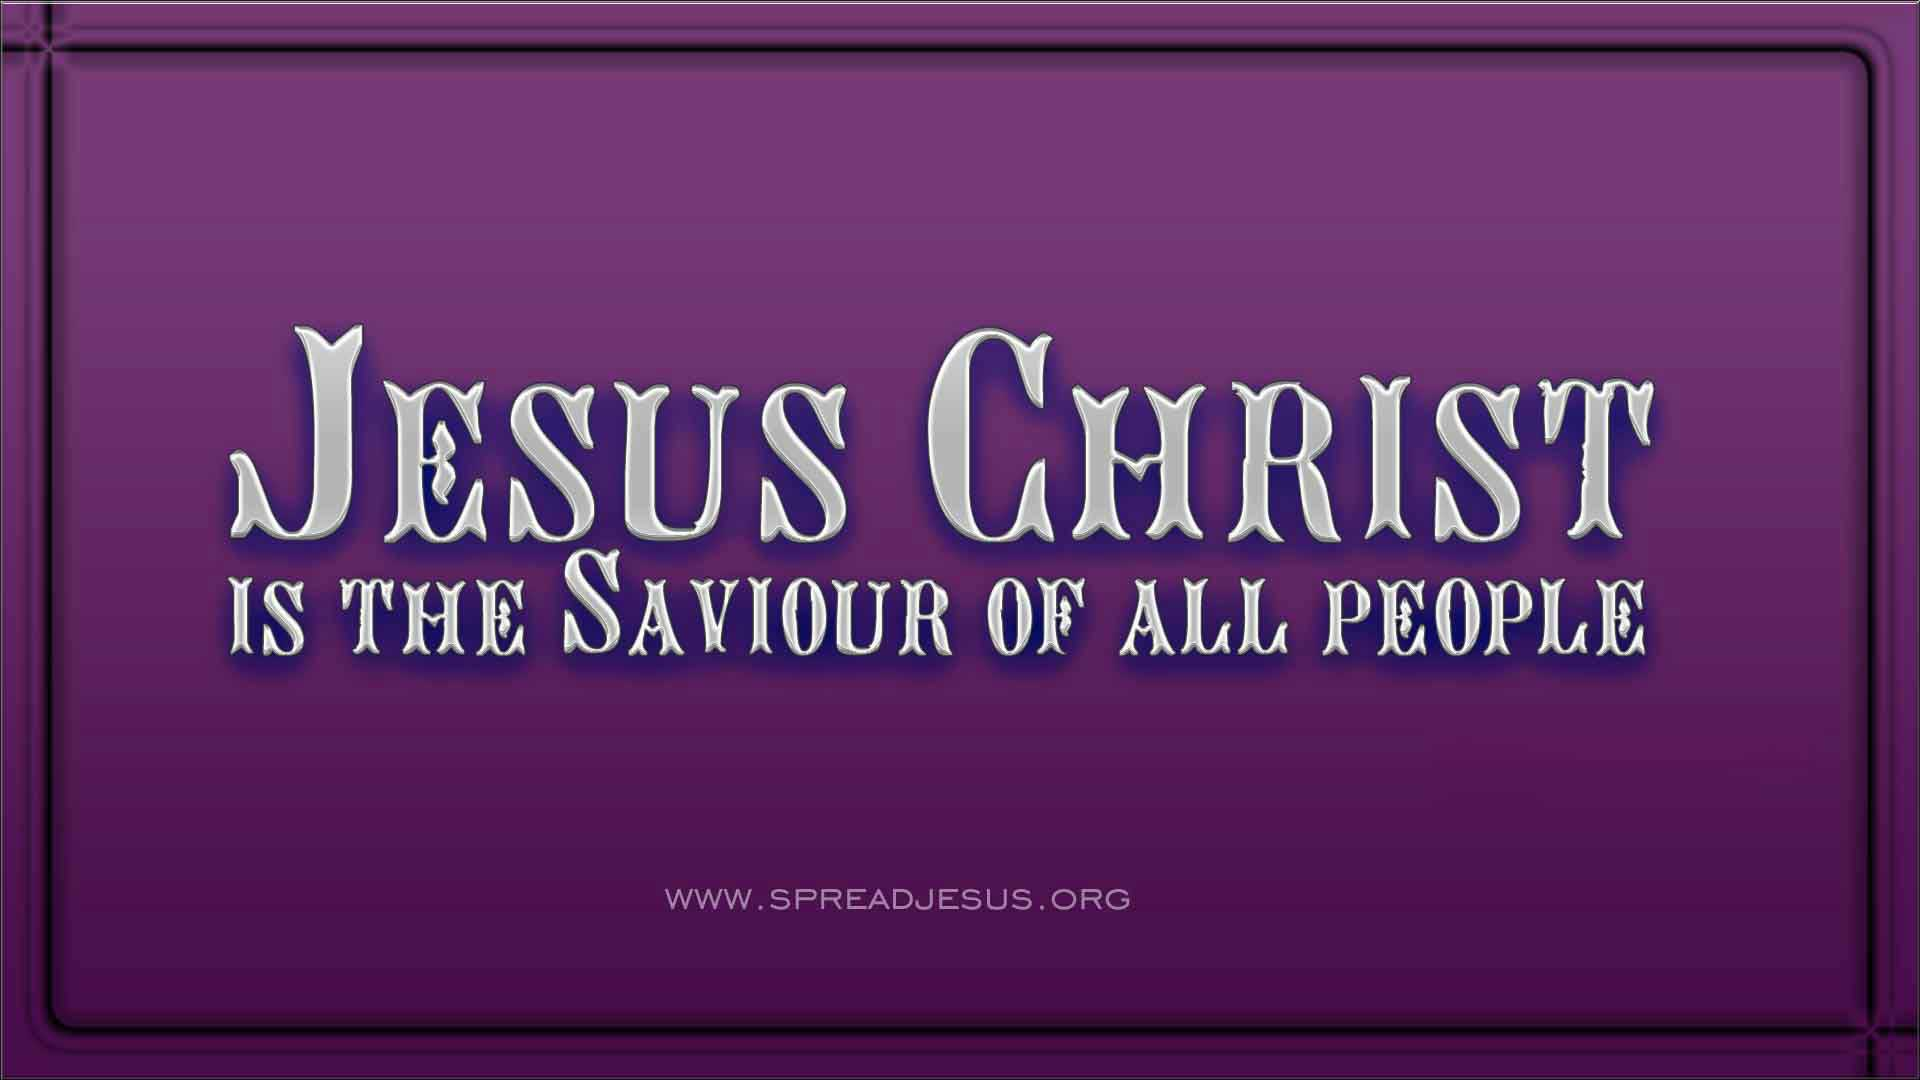 Quotes Hindi Wallpaper Download Jesus Christ Hd Wallpapers Pack 1 Jesus Christ Is The